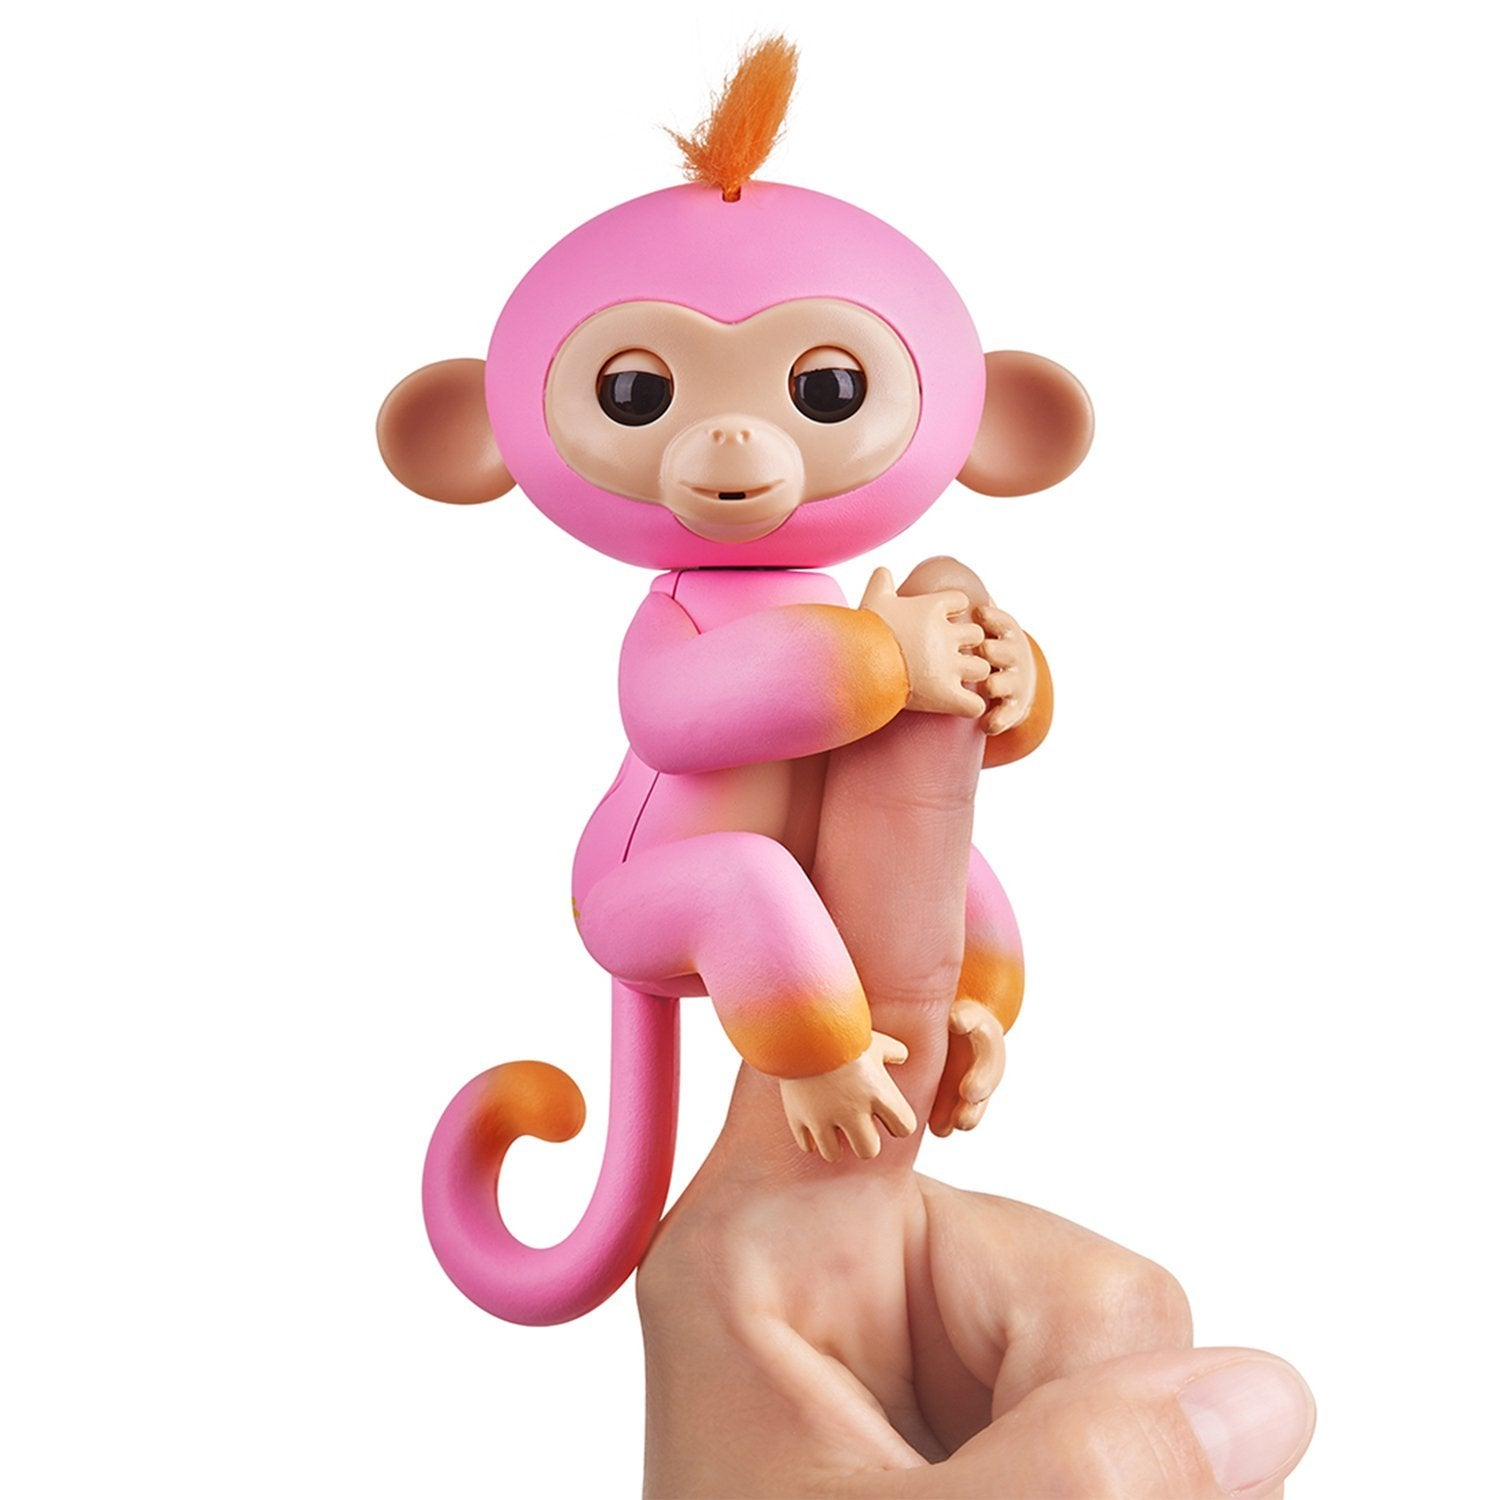 Fingerlings Interactive Baby Monkeys Smart Toys by WowWee